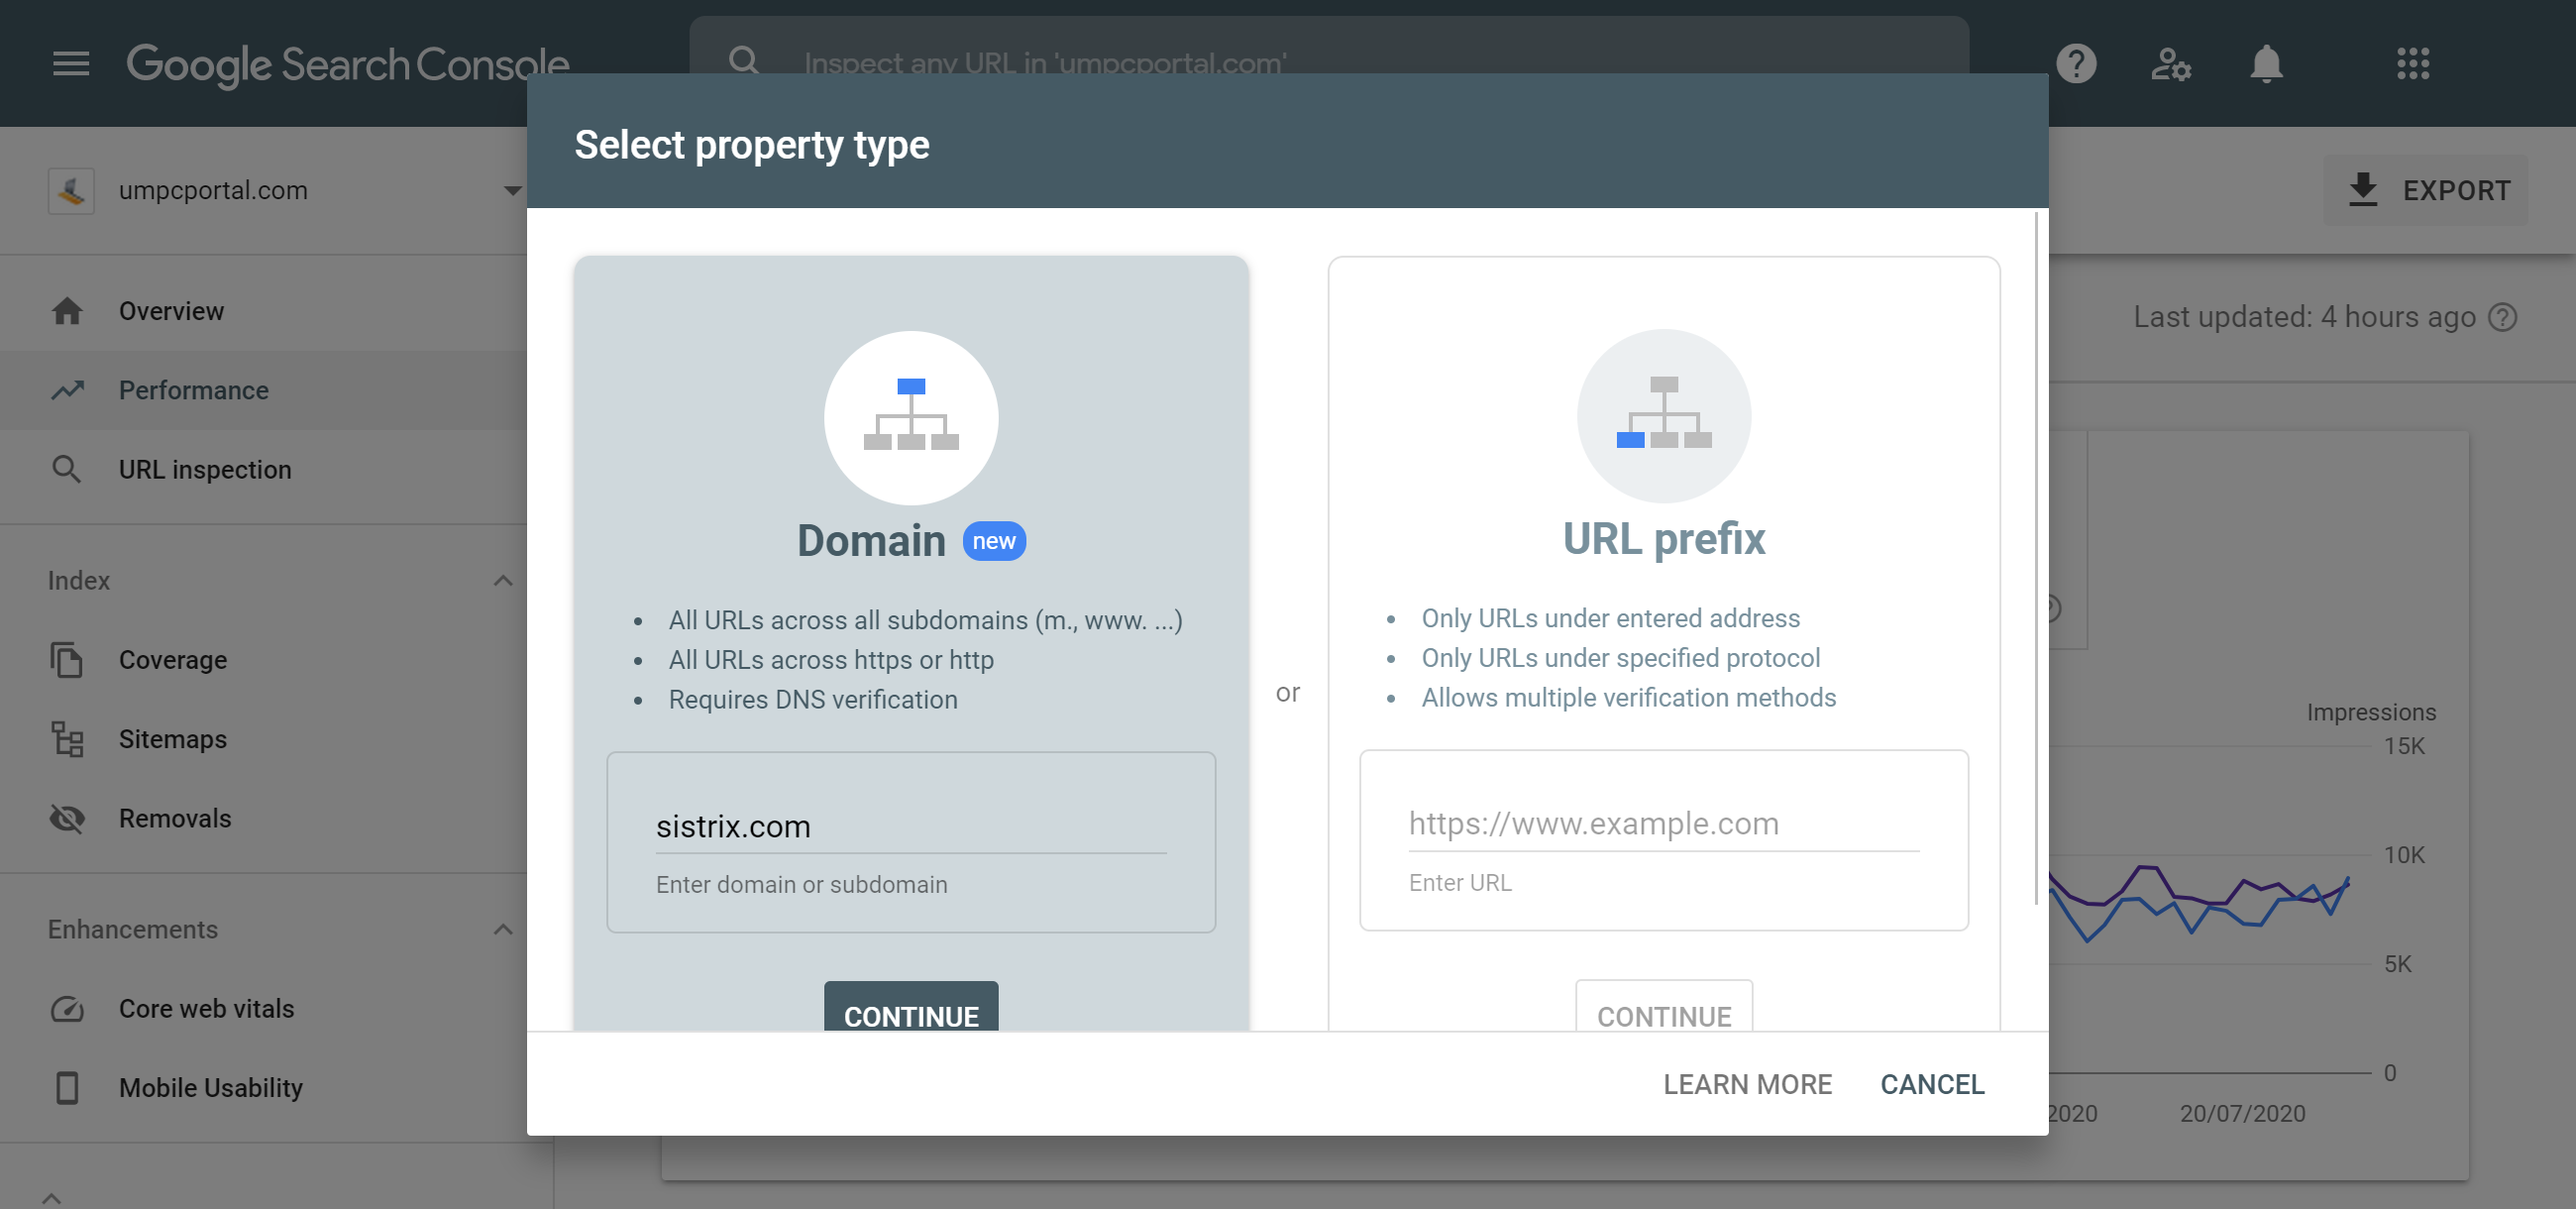 Google Search Console Add Property feature.